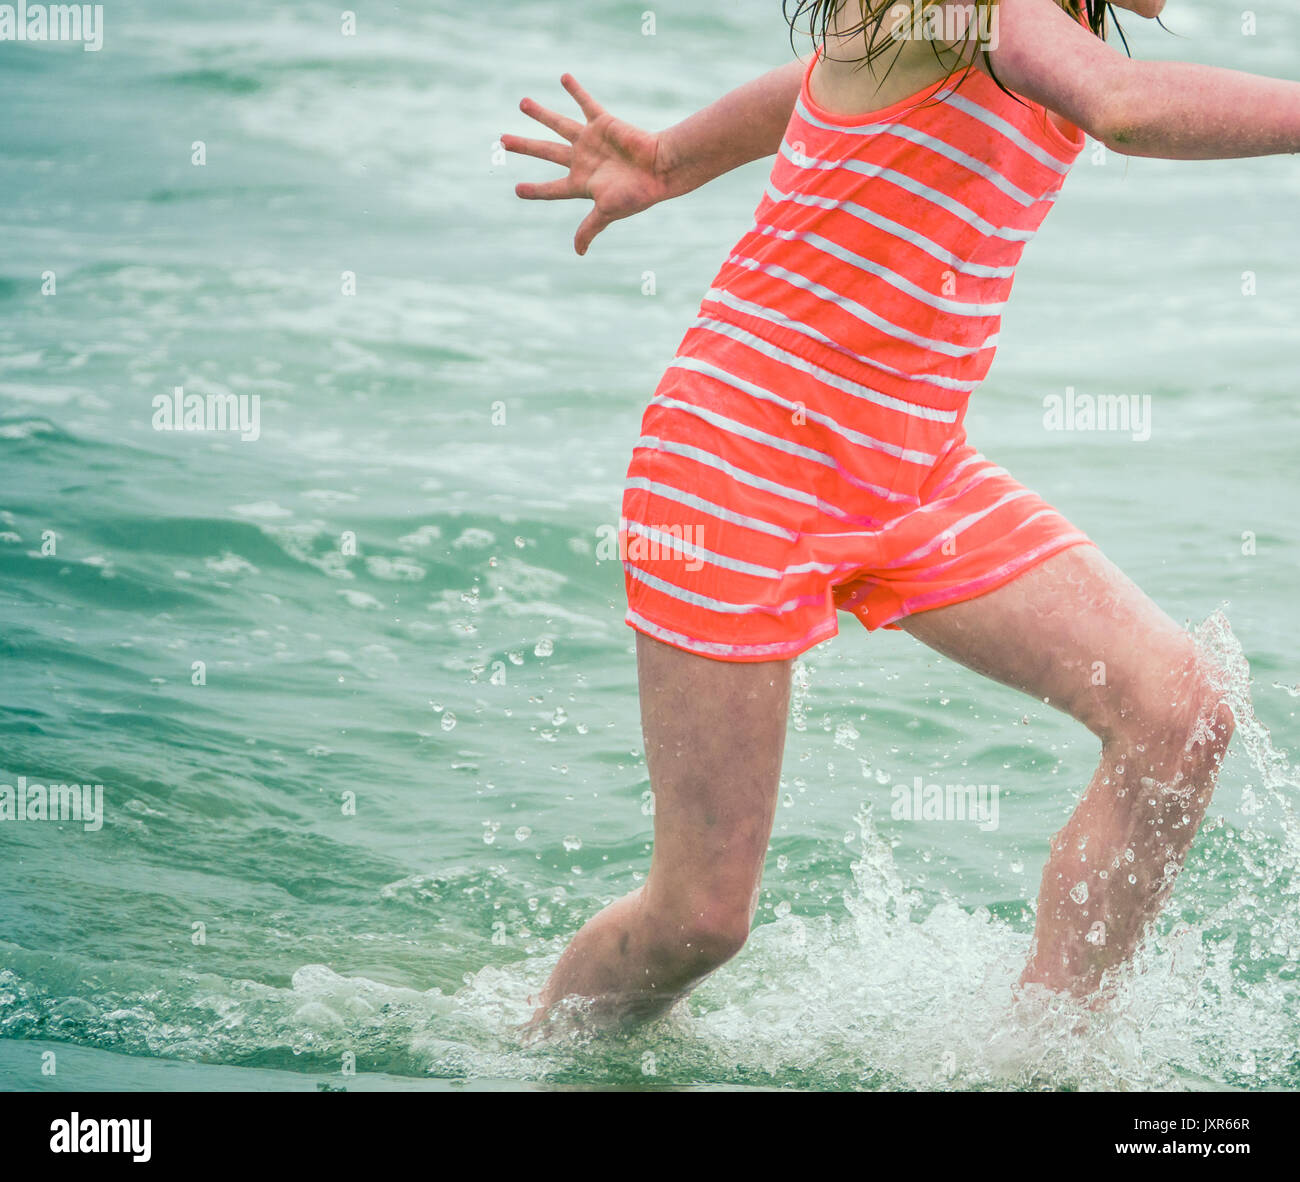 Retro Style Detail Of A Child In Old Fashioned Swimsuit Playing In The Ocean Waves Stock Photo